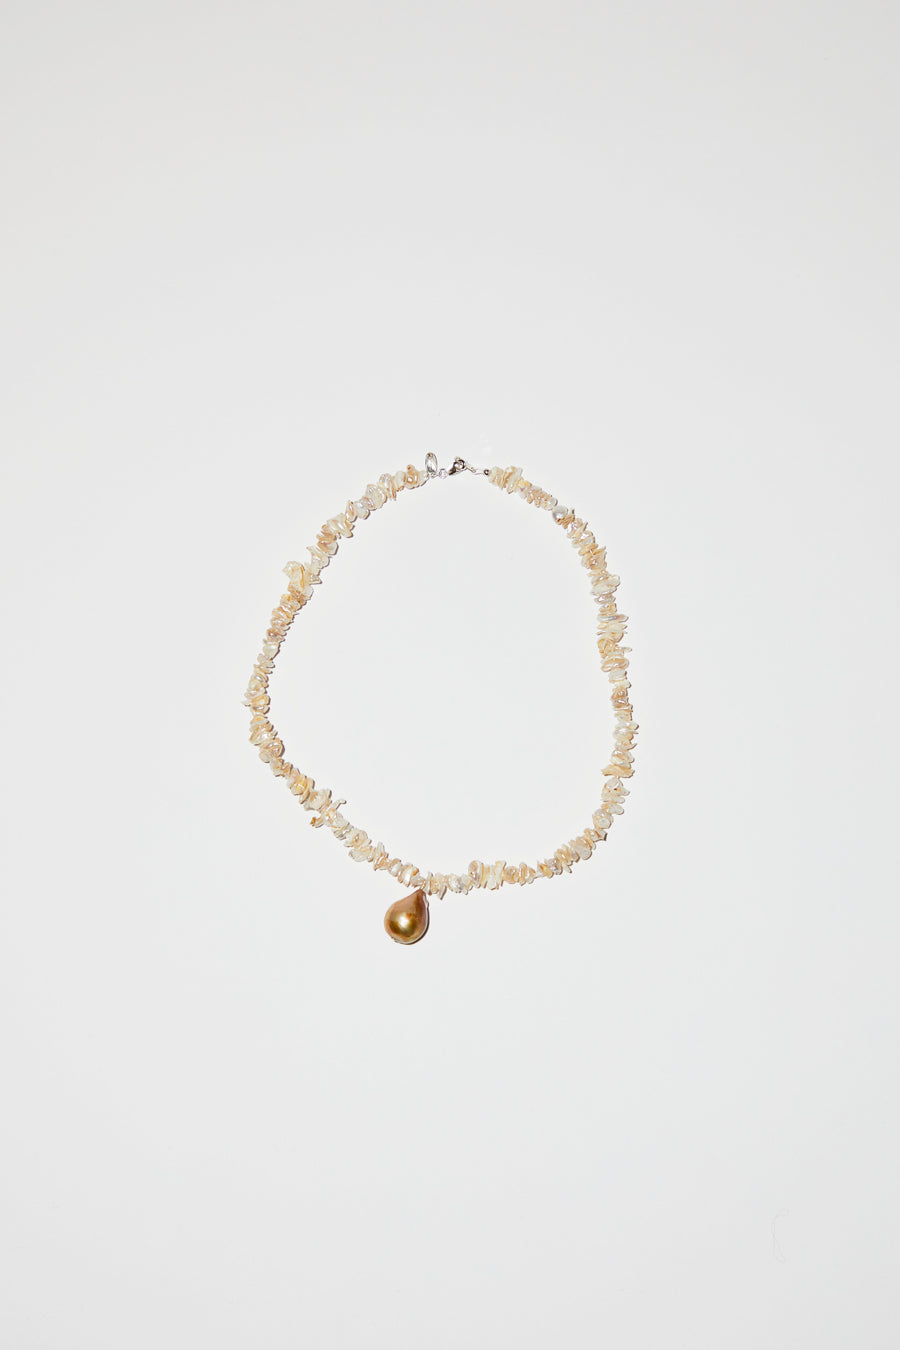 Santangelo Kitano Necklace in White